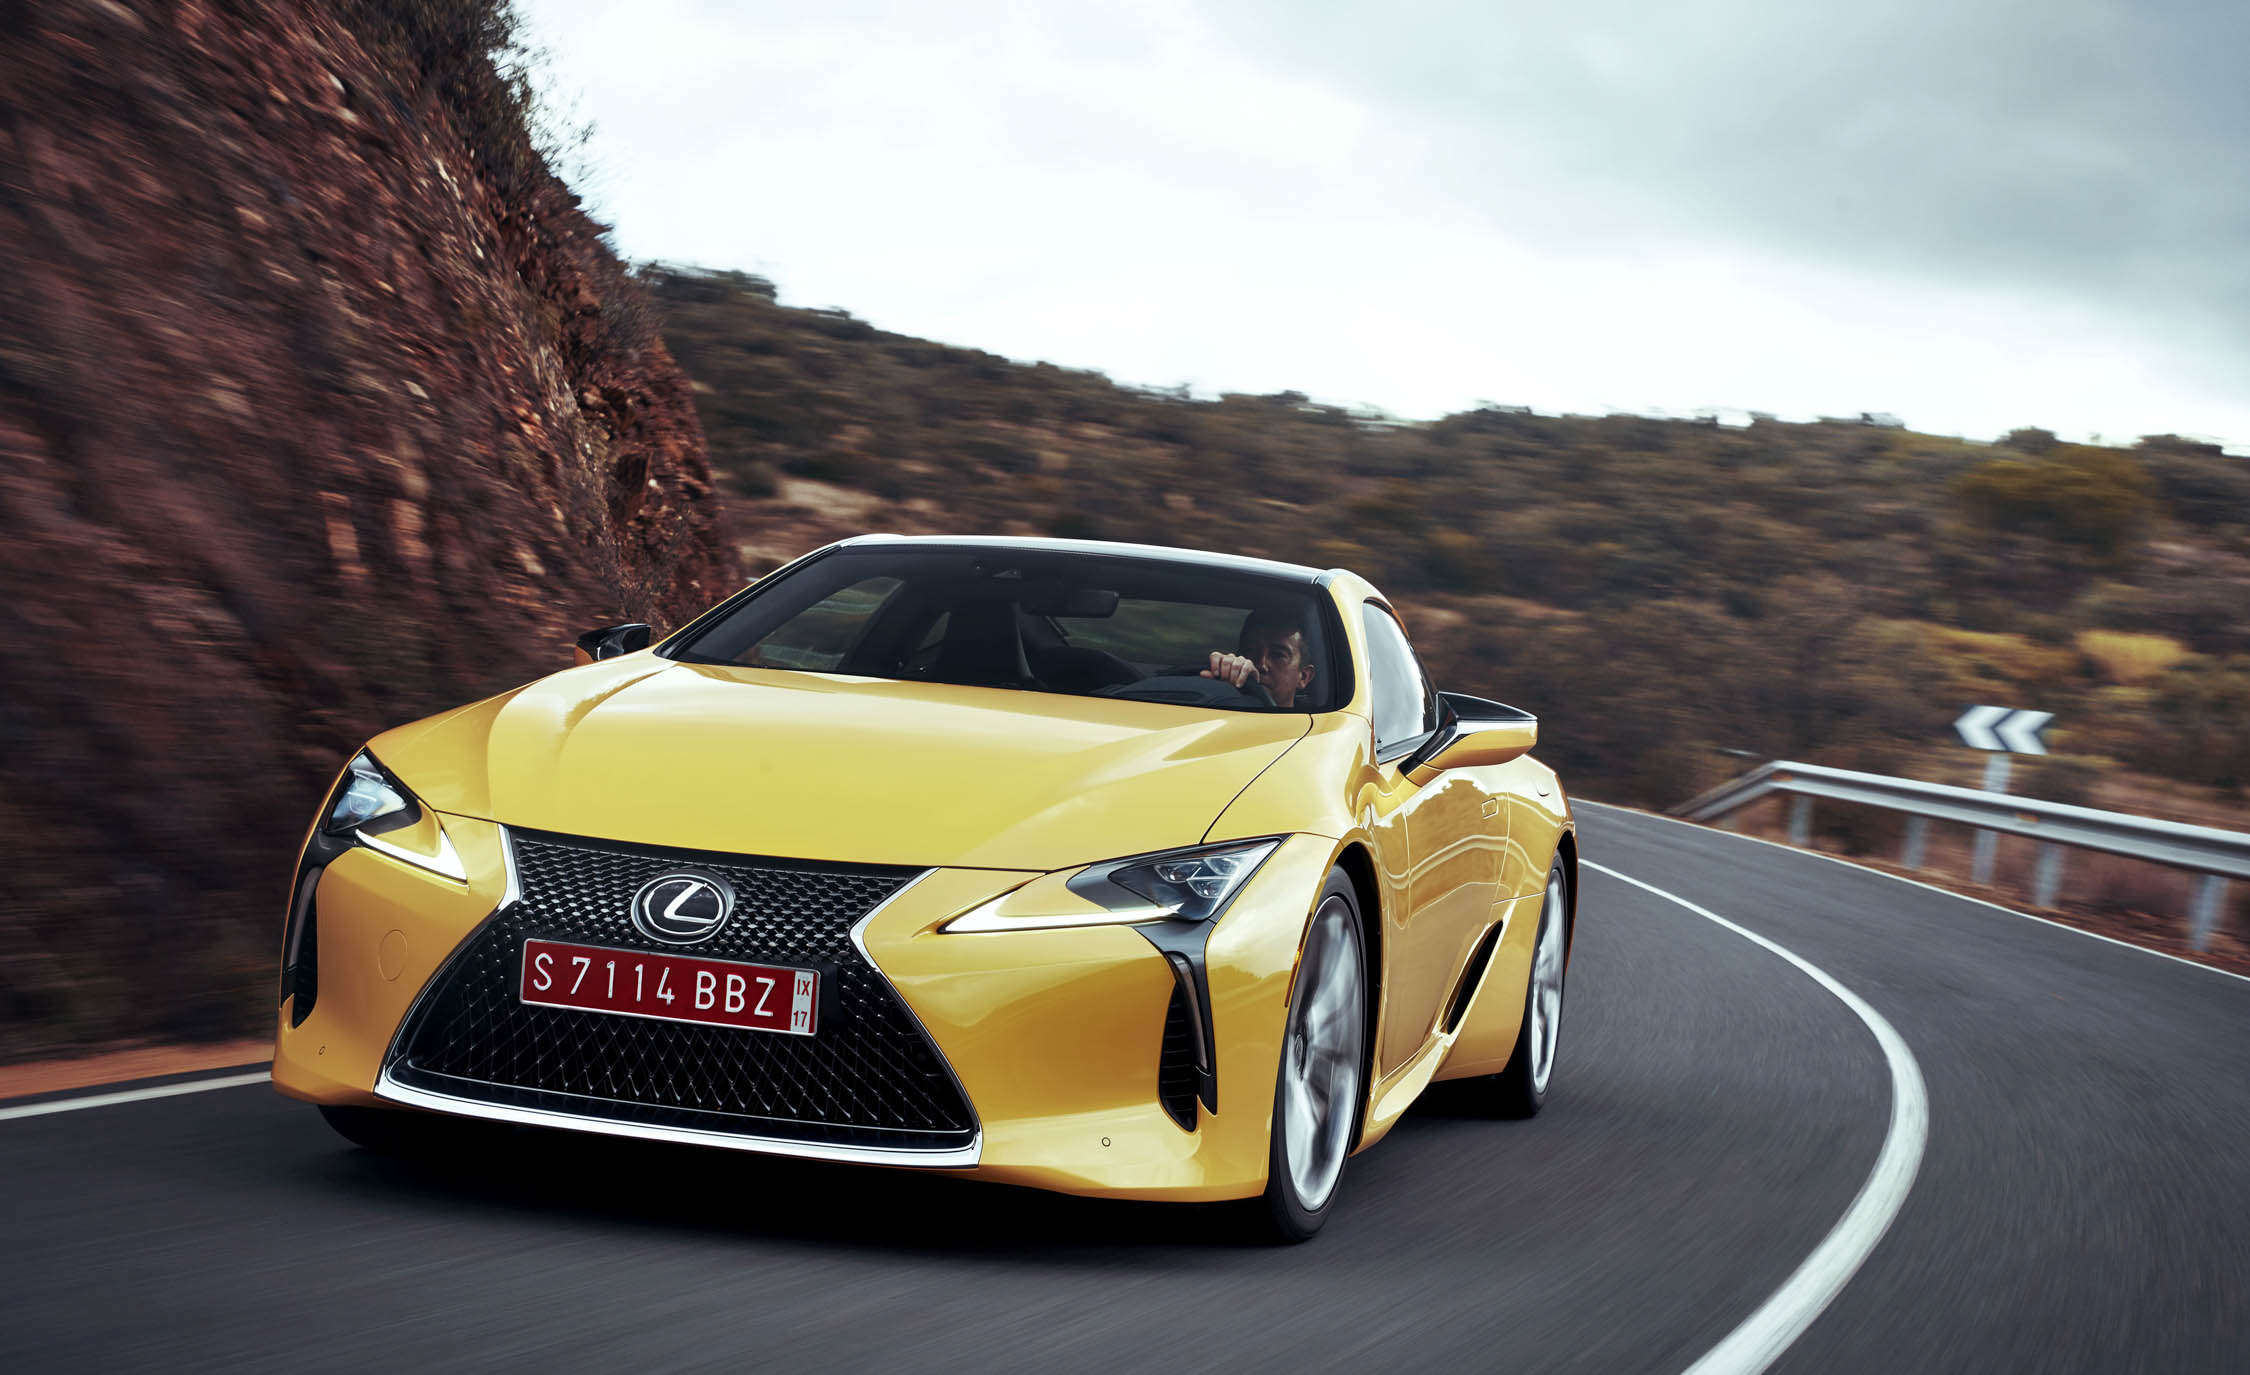 2018 Lexus Lc500 Yellow Test Drive (Photo 71 of 84)